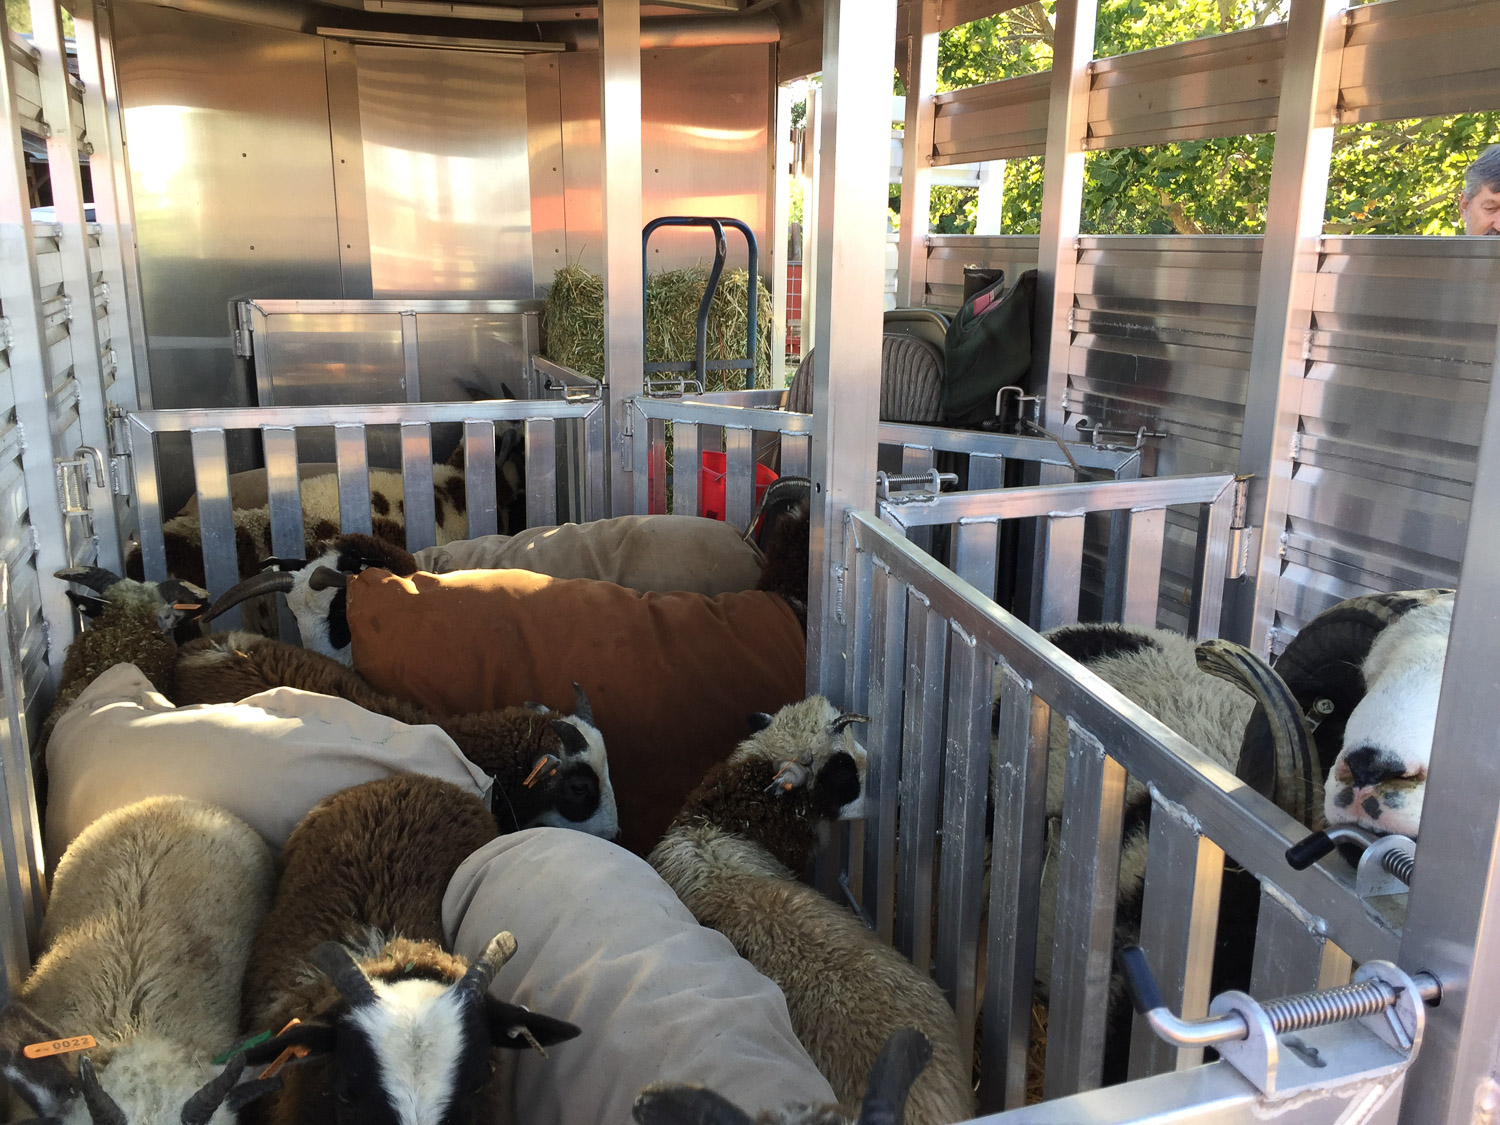 Sheep in the trailer ready to get on the road.